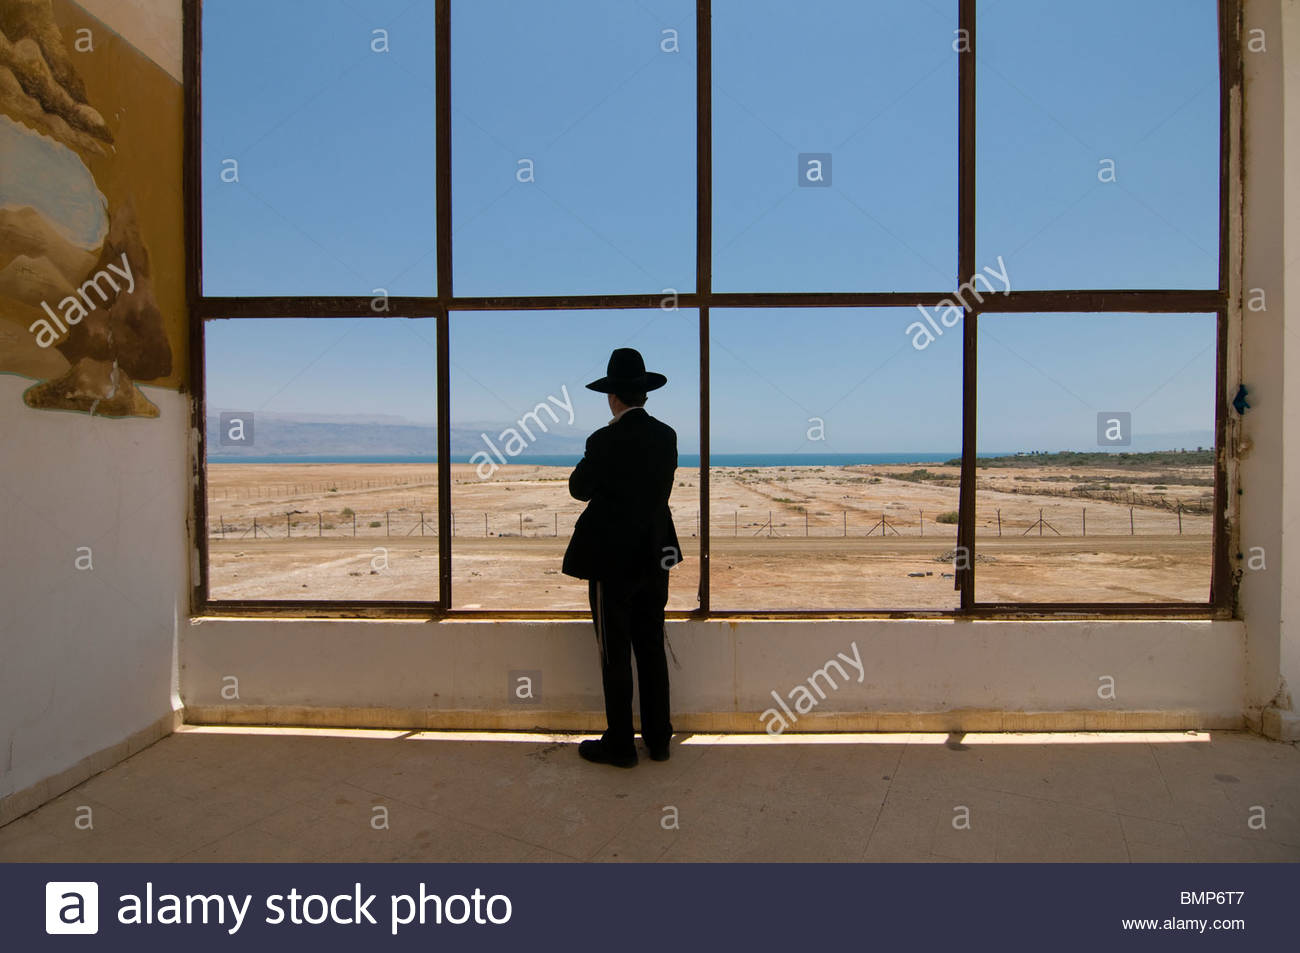 An Ultra orthodox  religious Jew peers out a window of the deserted Lido hotel complex in the northern shore of - Stock Image